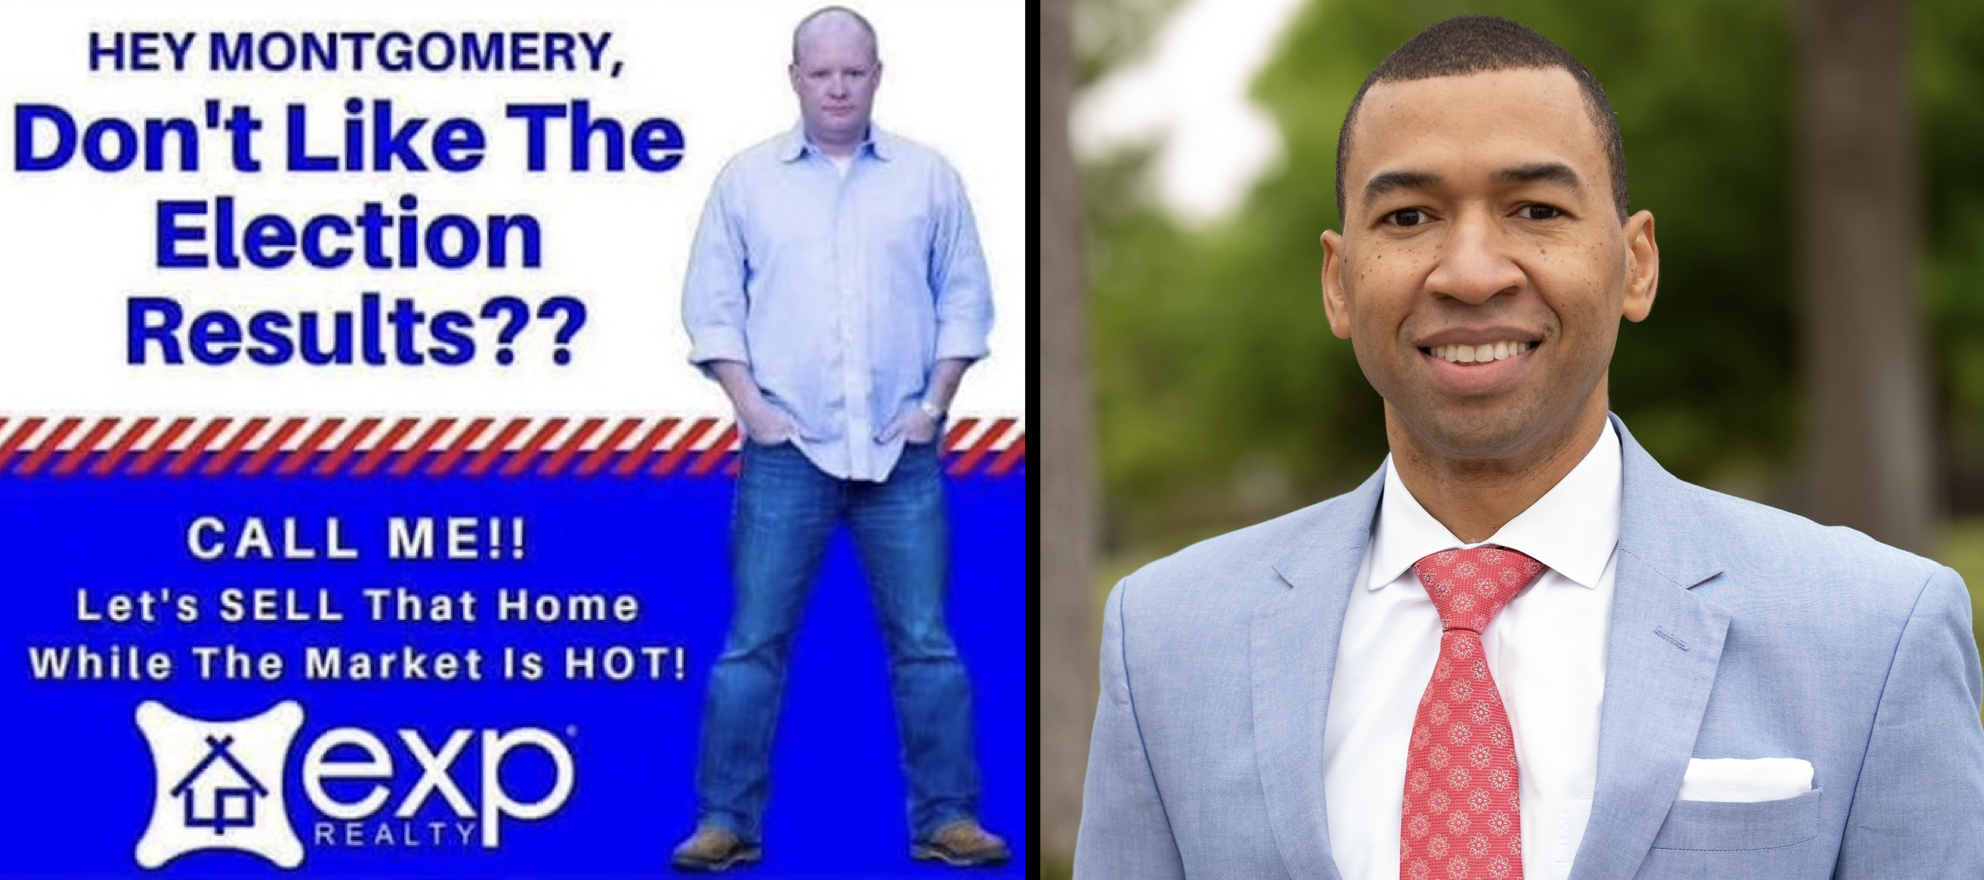 EXp Realty agent axed over offensive mayoral election ad